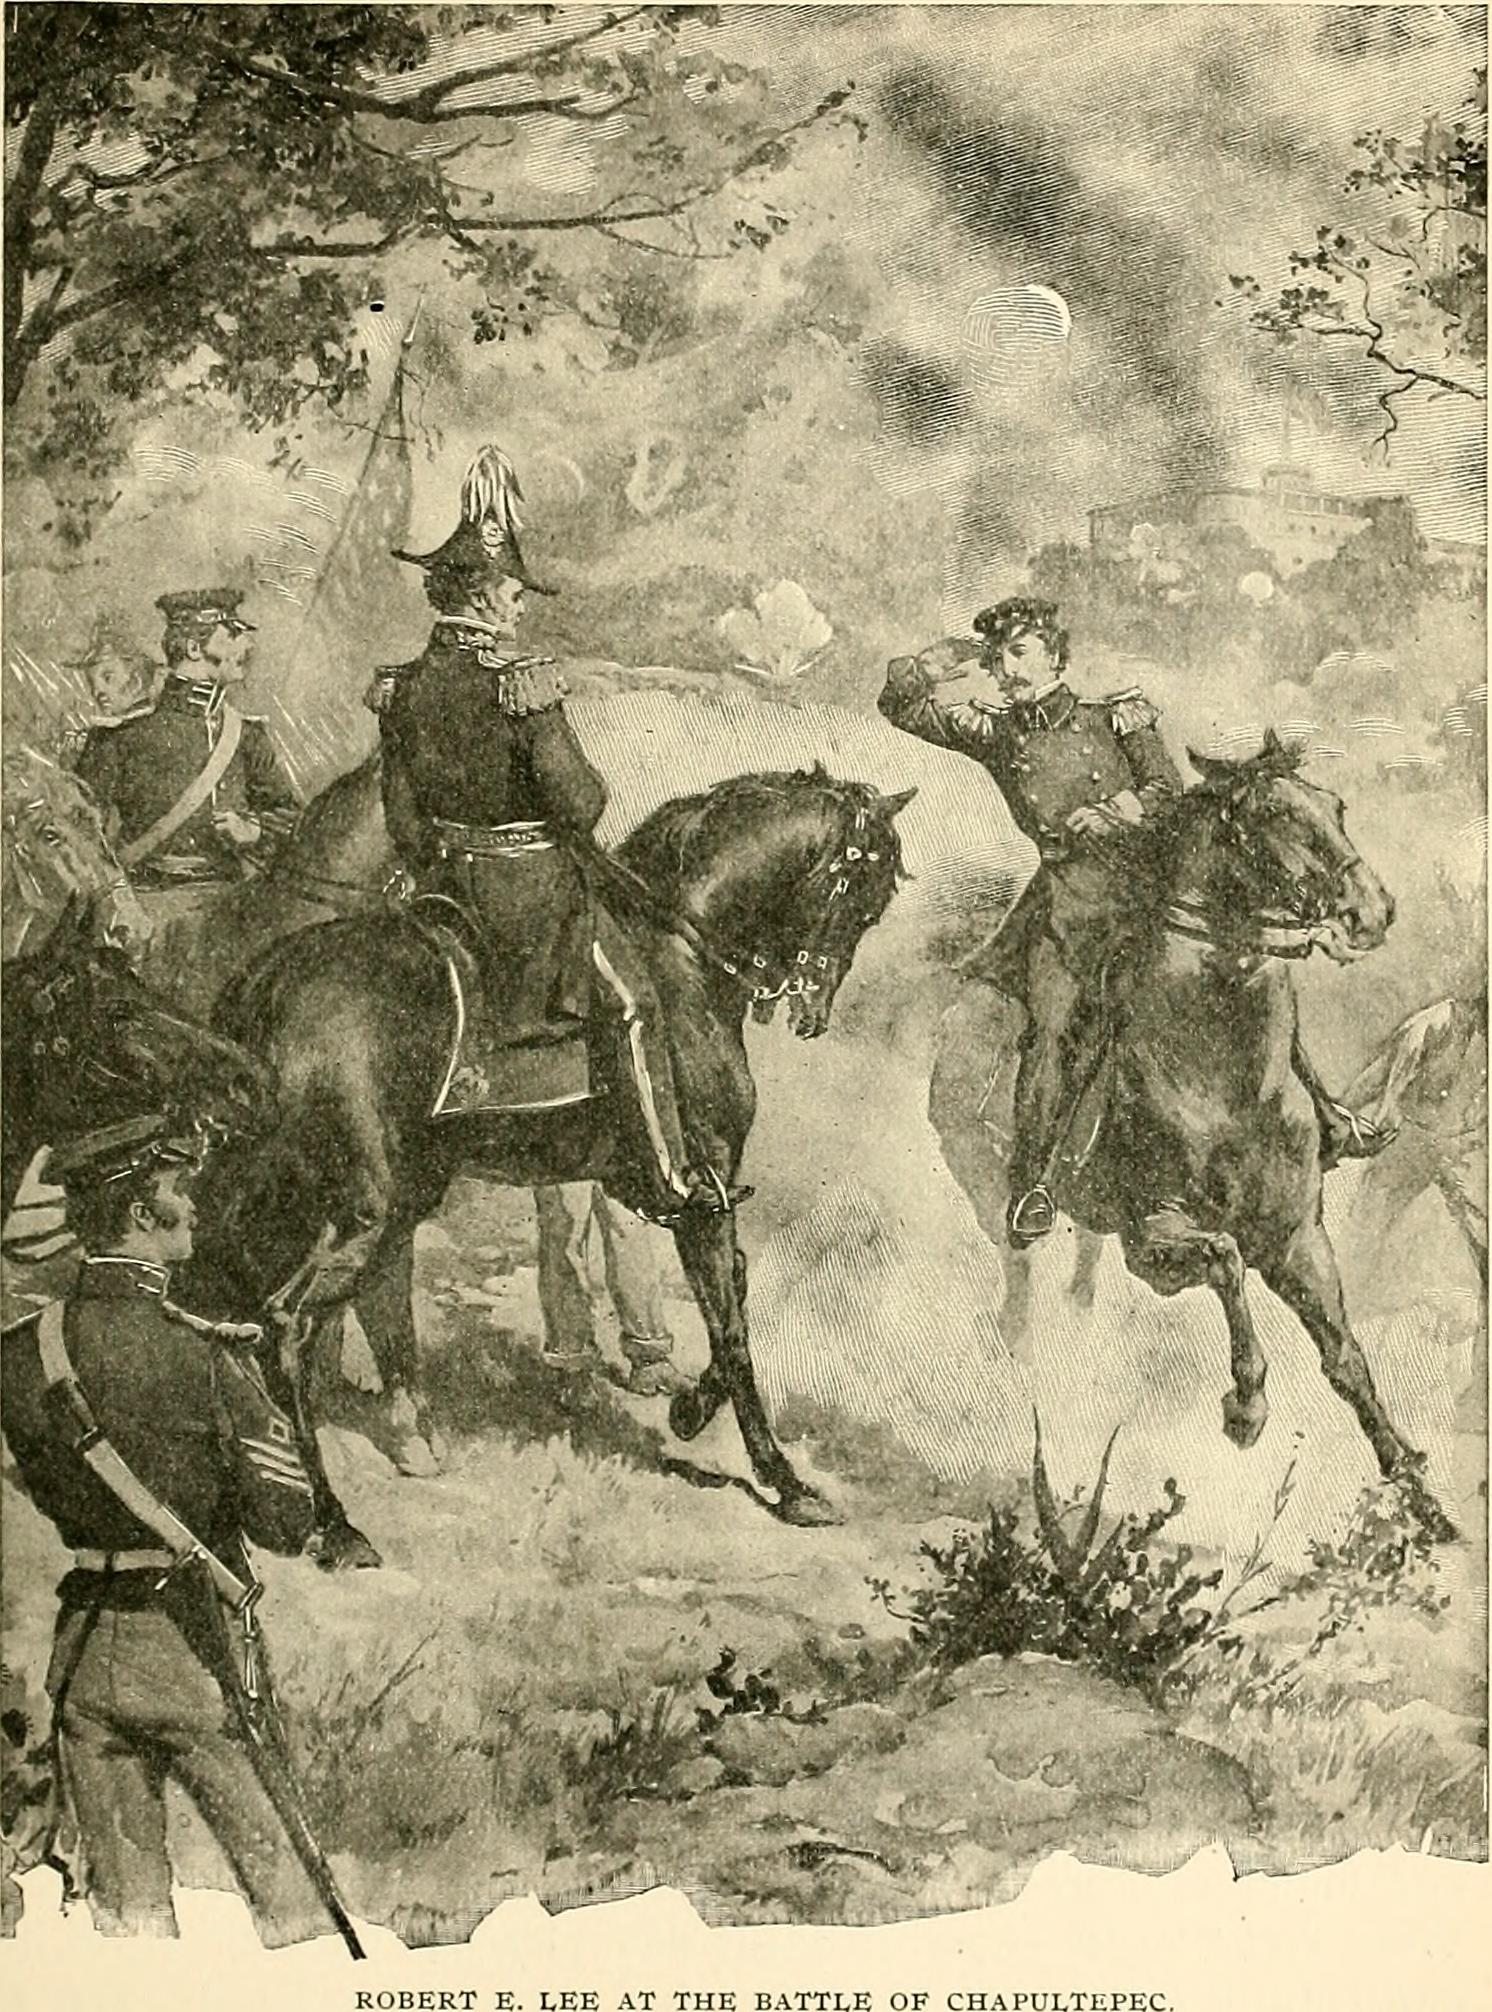 a biography of robert edward lee a soldier Biography of general robert e lee  recommended books and more robert edward lee (january 19, 1807 – october 12, 1870) was an american and confederate soldier,.